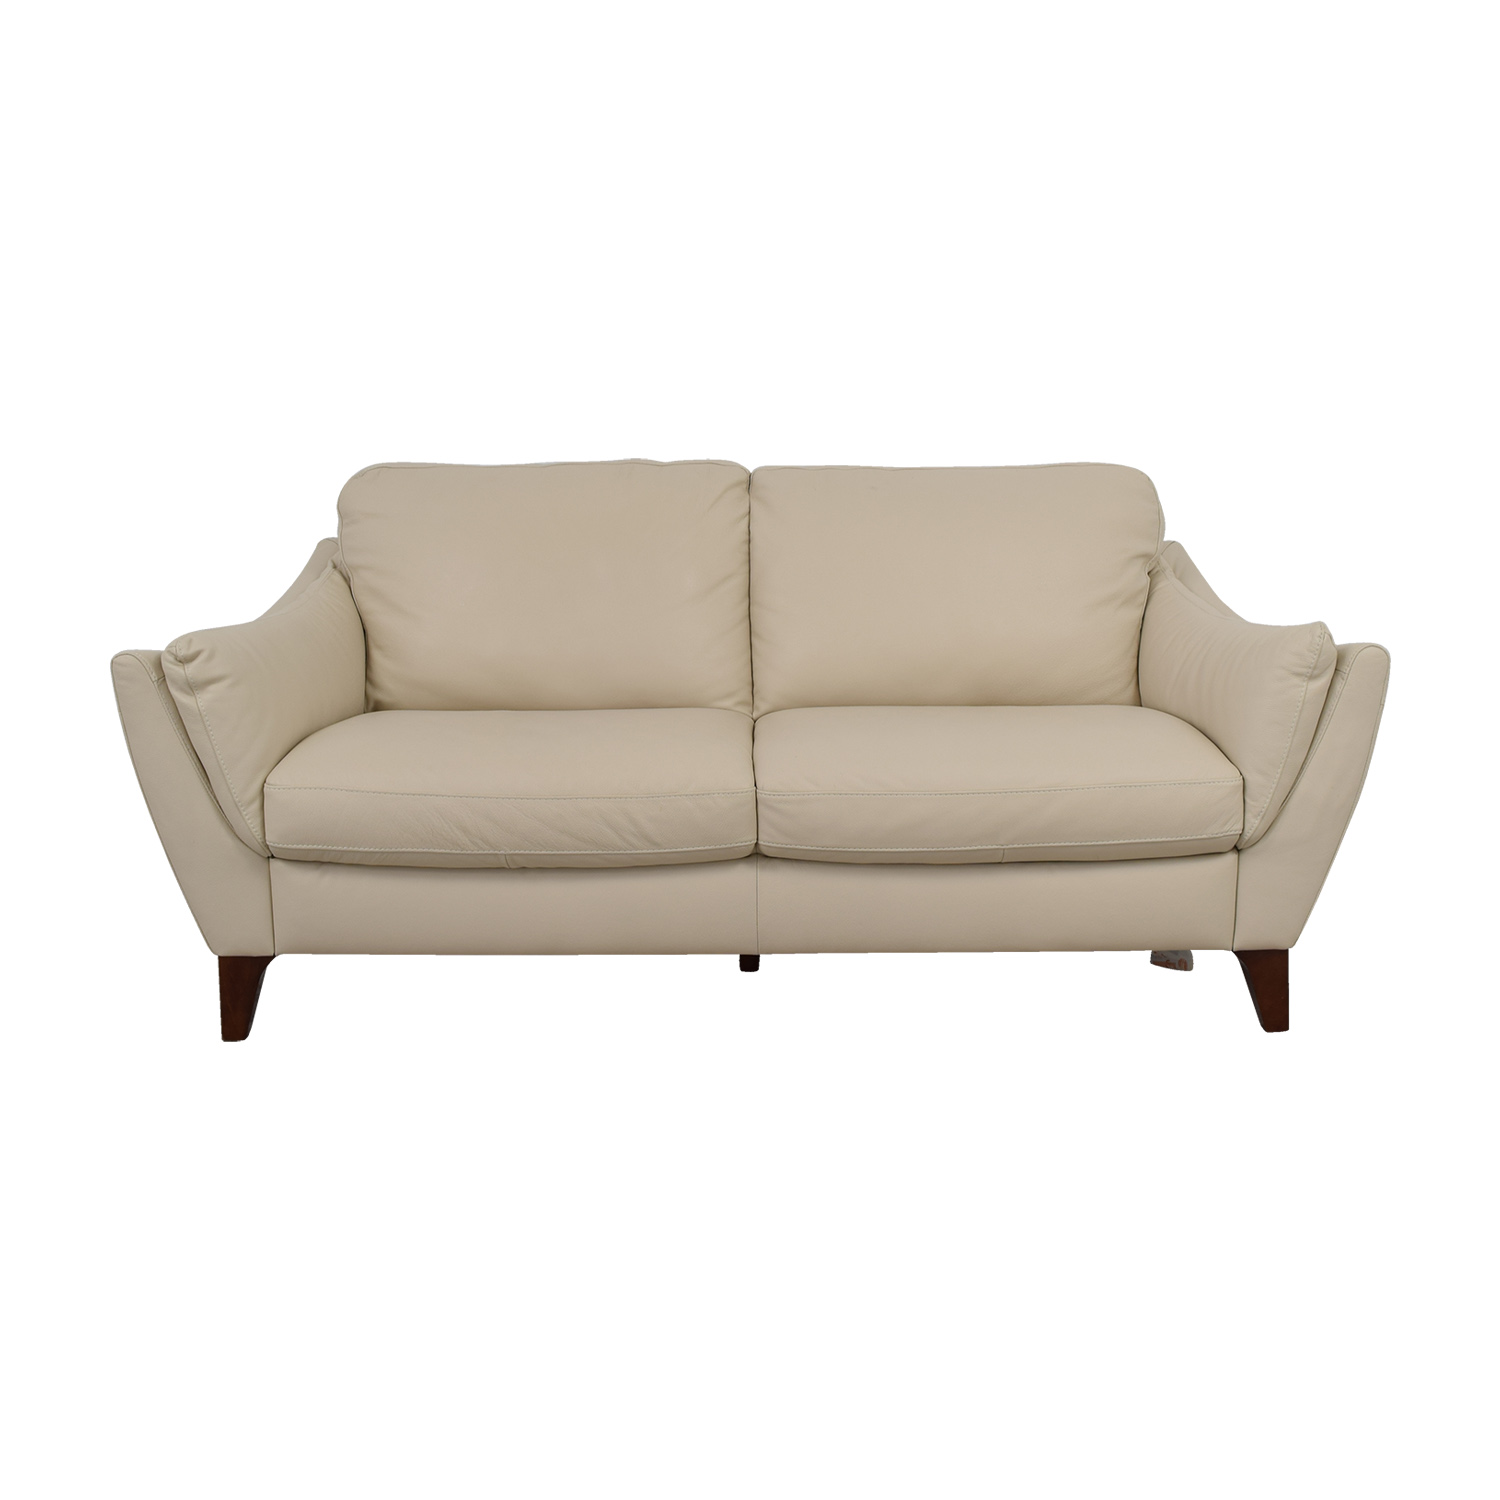 Raymour & Flanigan Natuzzi Editions Beige Leather Two-Cushion Sofa Raymour & Flanigan